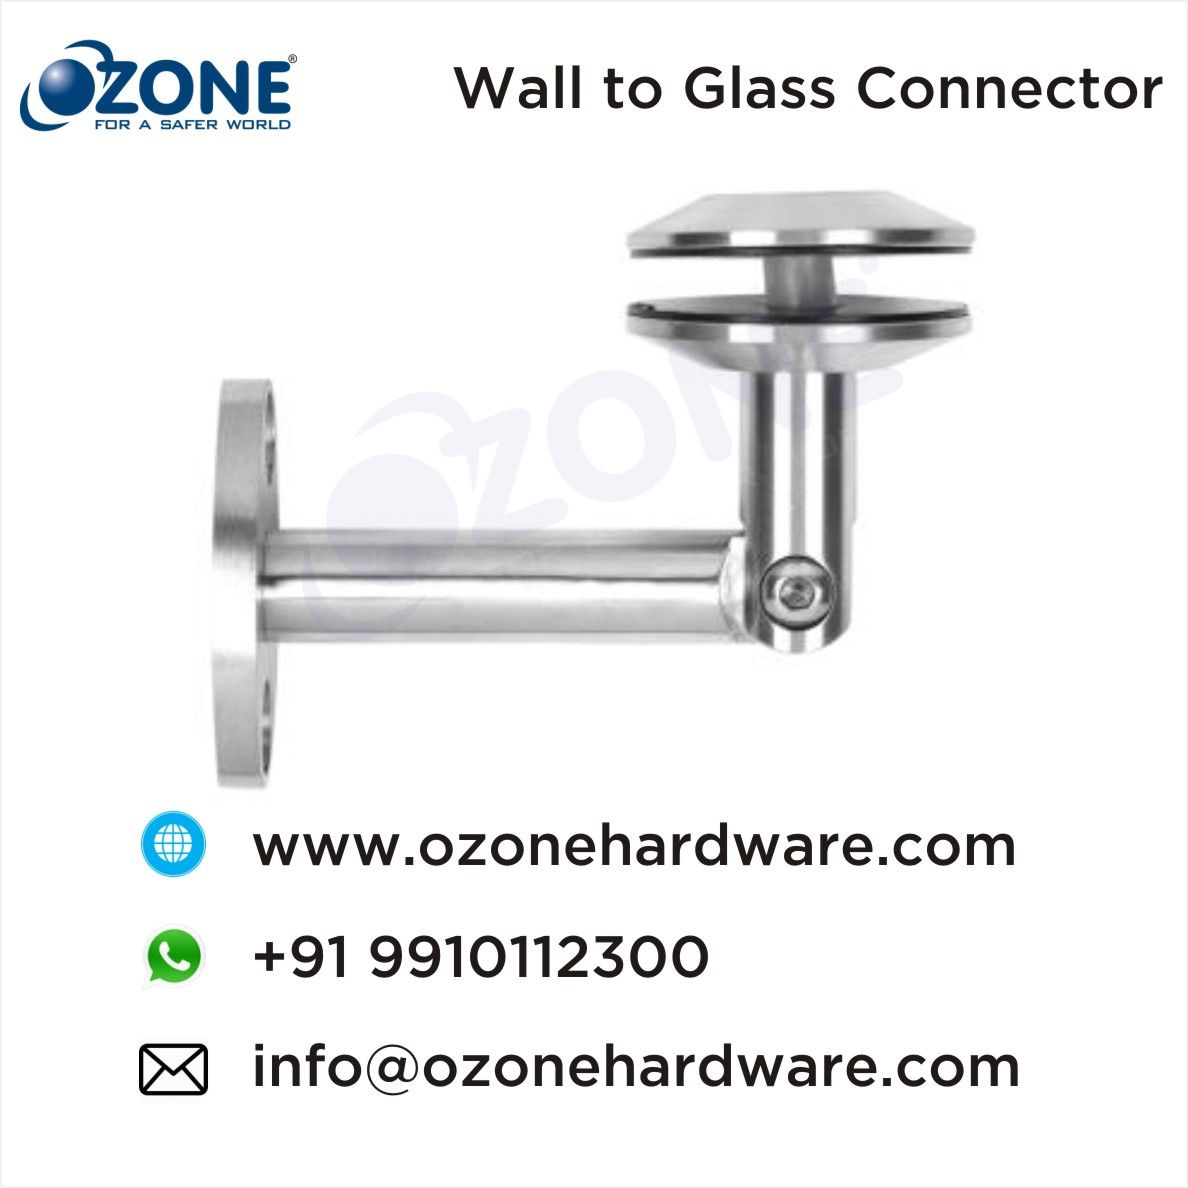 Wall to #Glass #Connector, #Canopy #Fittings, #Spider